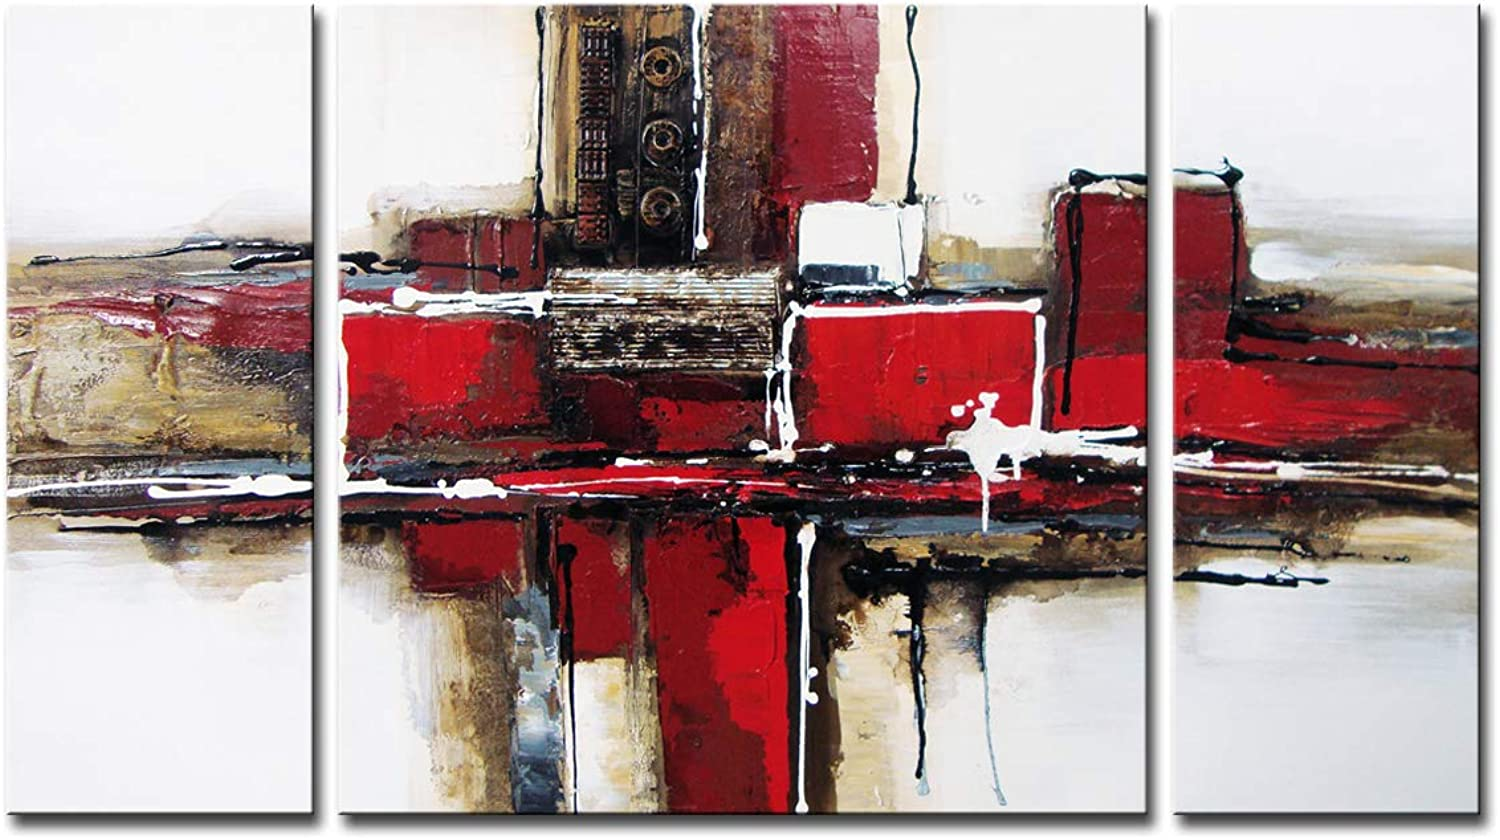 Noah Art-3 Panel Abstract Wall Art, Red and Black 100% Hand Painted Modern Abstract Oil Paintings on Canvas, Large Abstract Art for Living Room Wall Decor, 24 Inches Height x 48 Inches Width